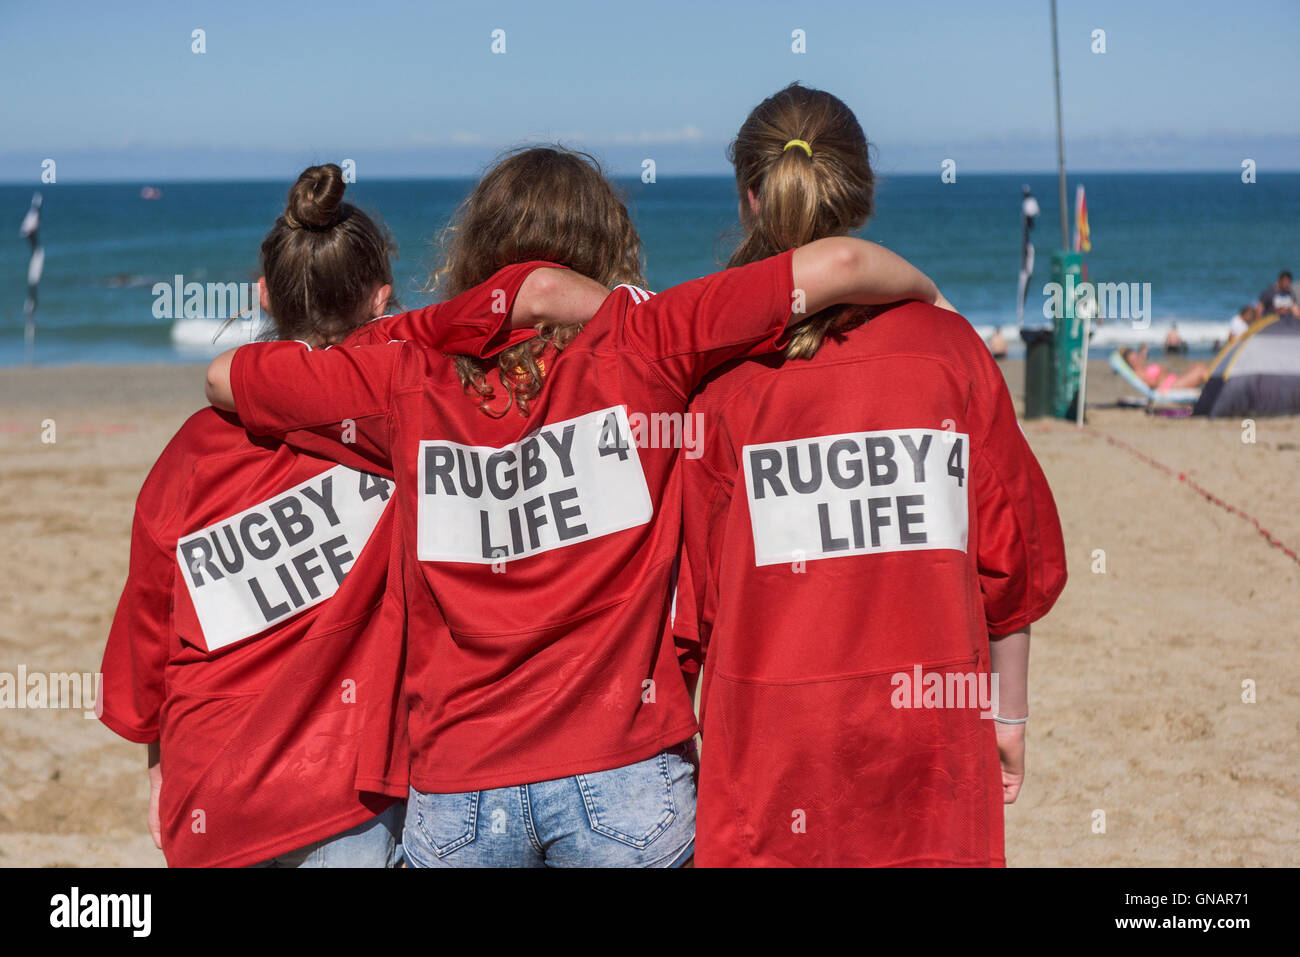 The annual Beach Tag Rugby tournament at Lusty Glaze in Newquay, Cornwall. - Stock Image